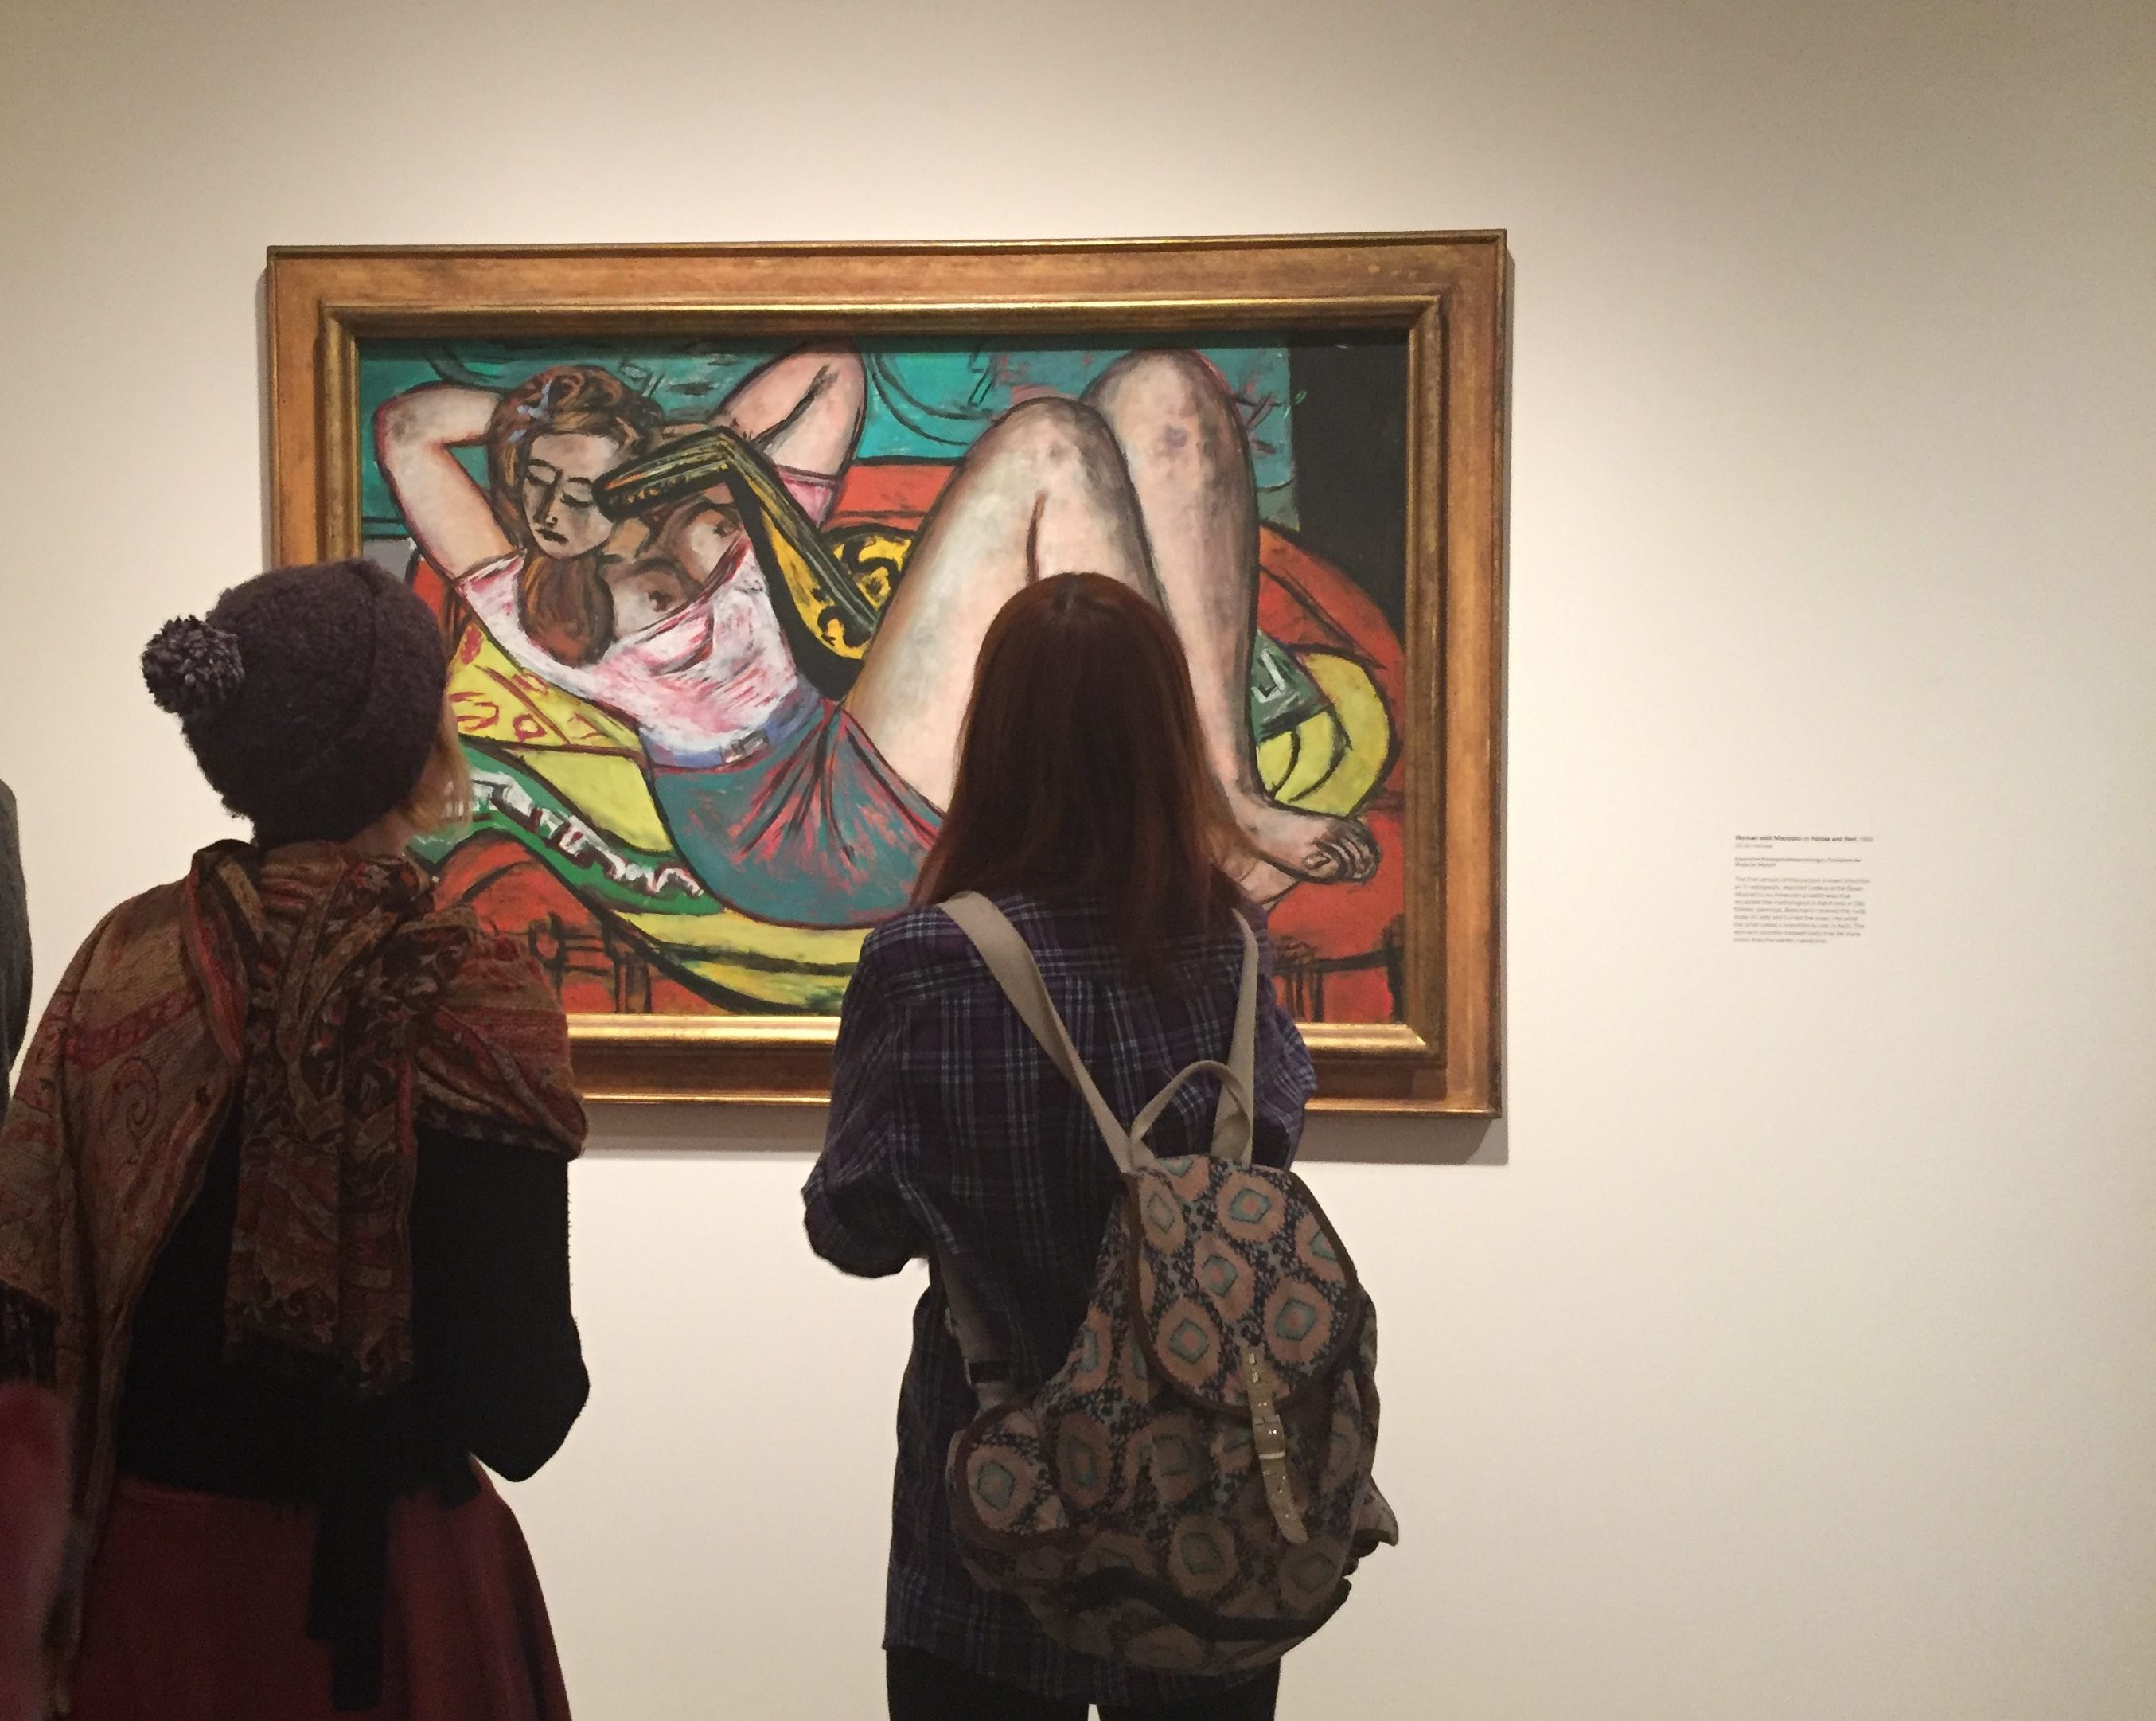 Max Beckmann in New York: Exhibition Visit and Book Review